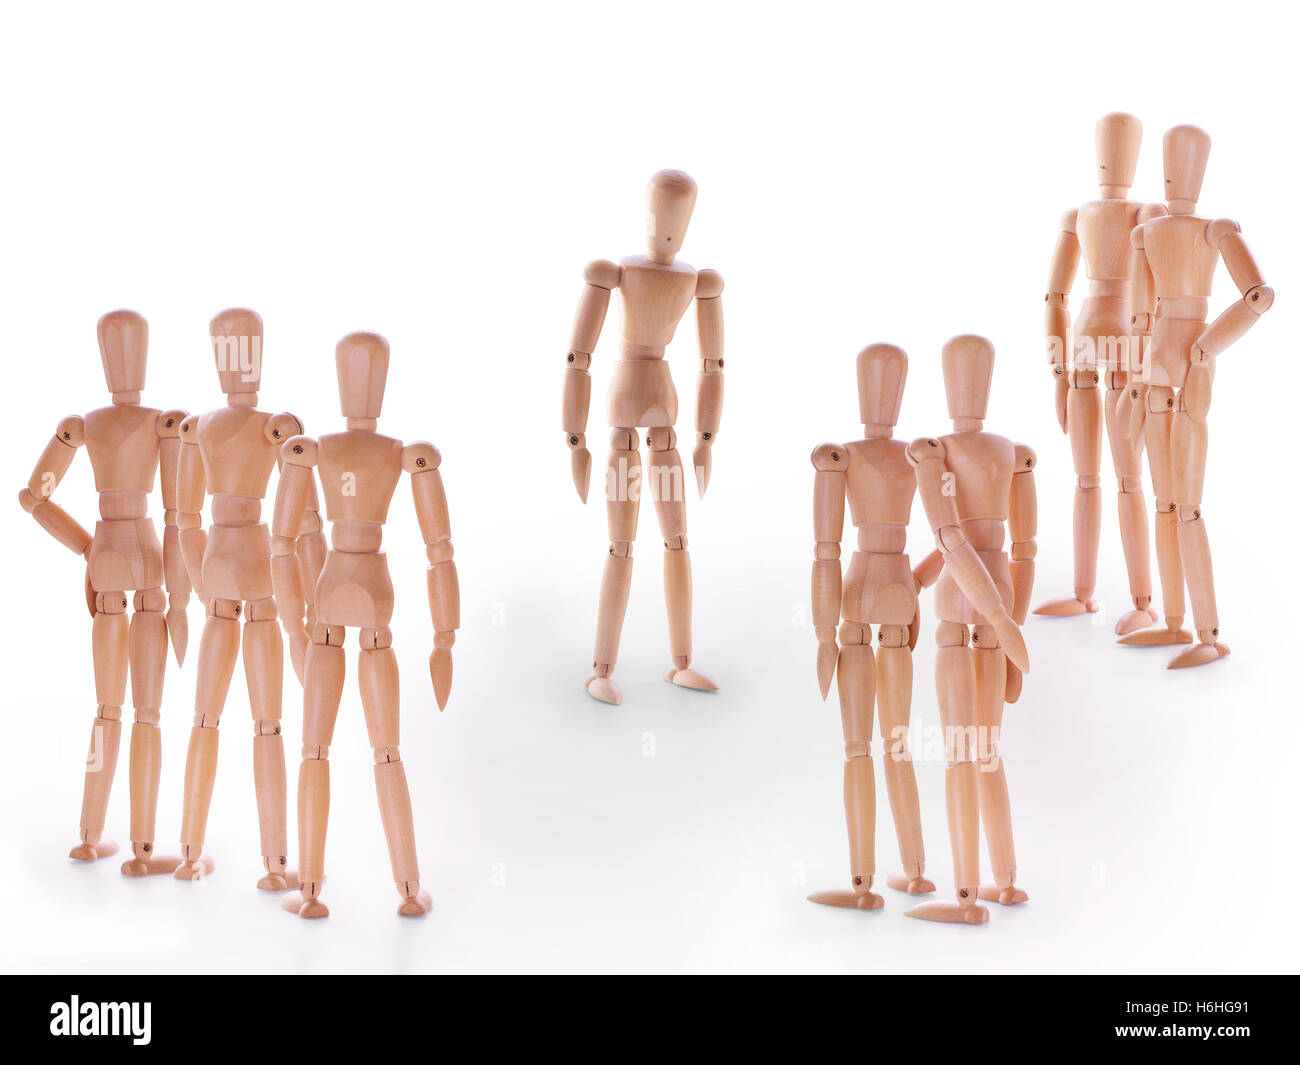 Scene with group of dummies, group of characters standing around one. Concept of accusation guilty person, bulling - Stock Image